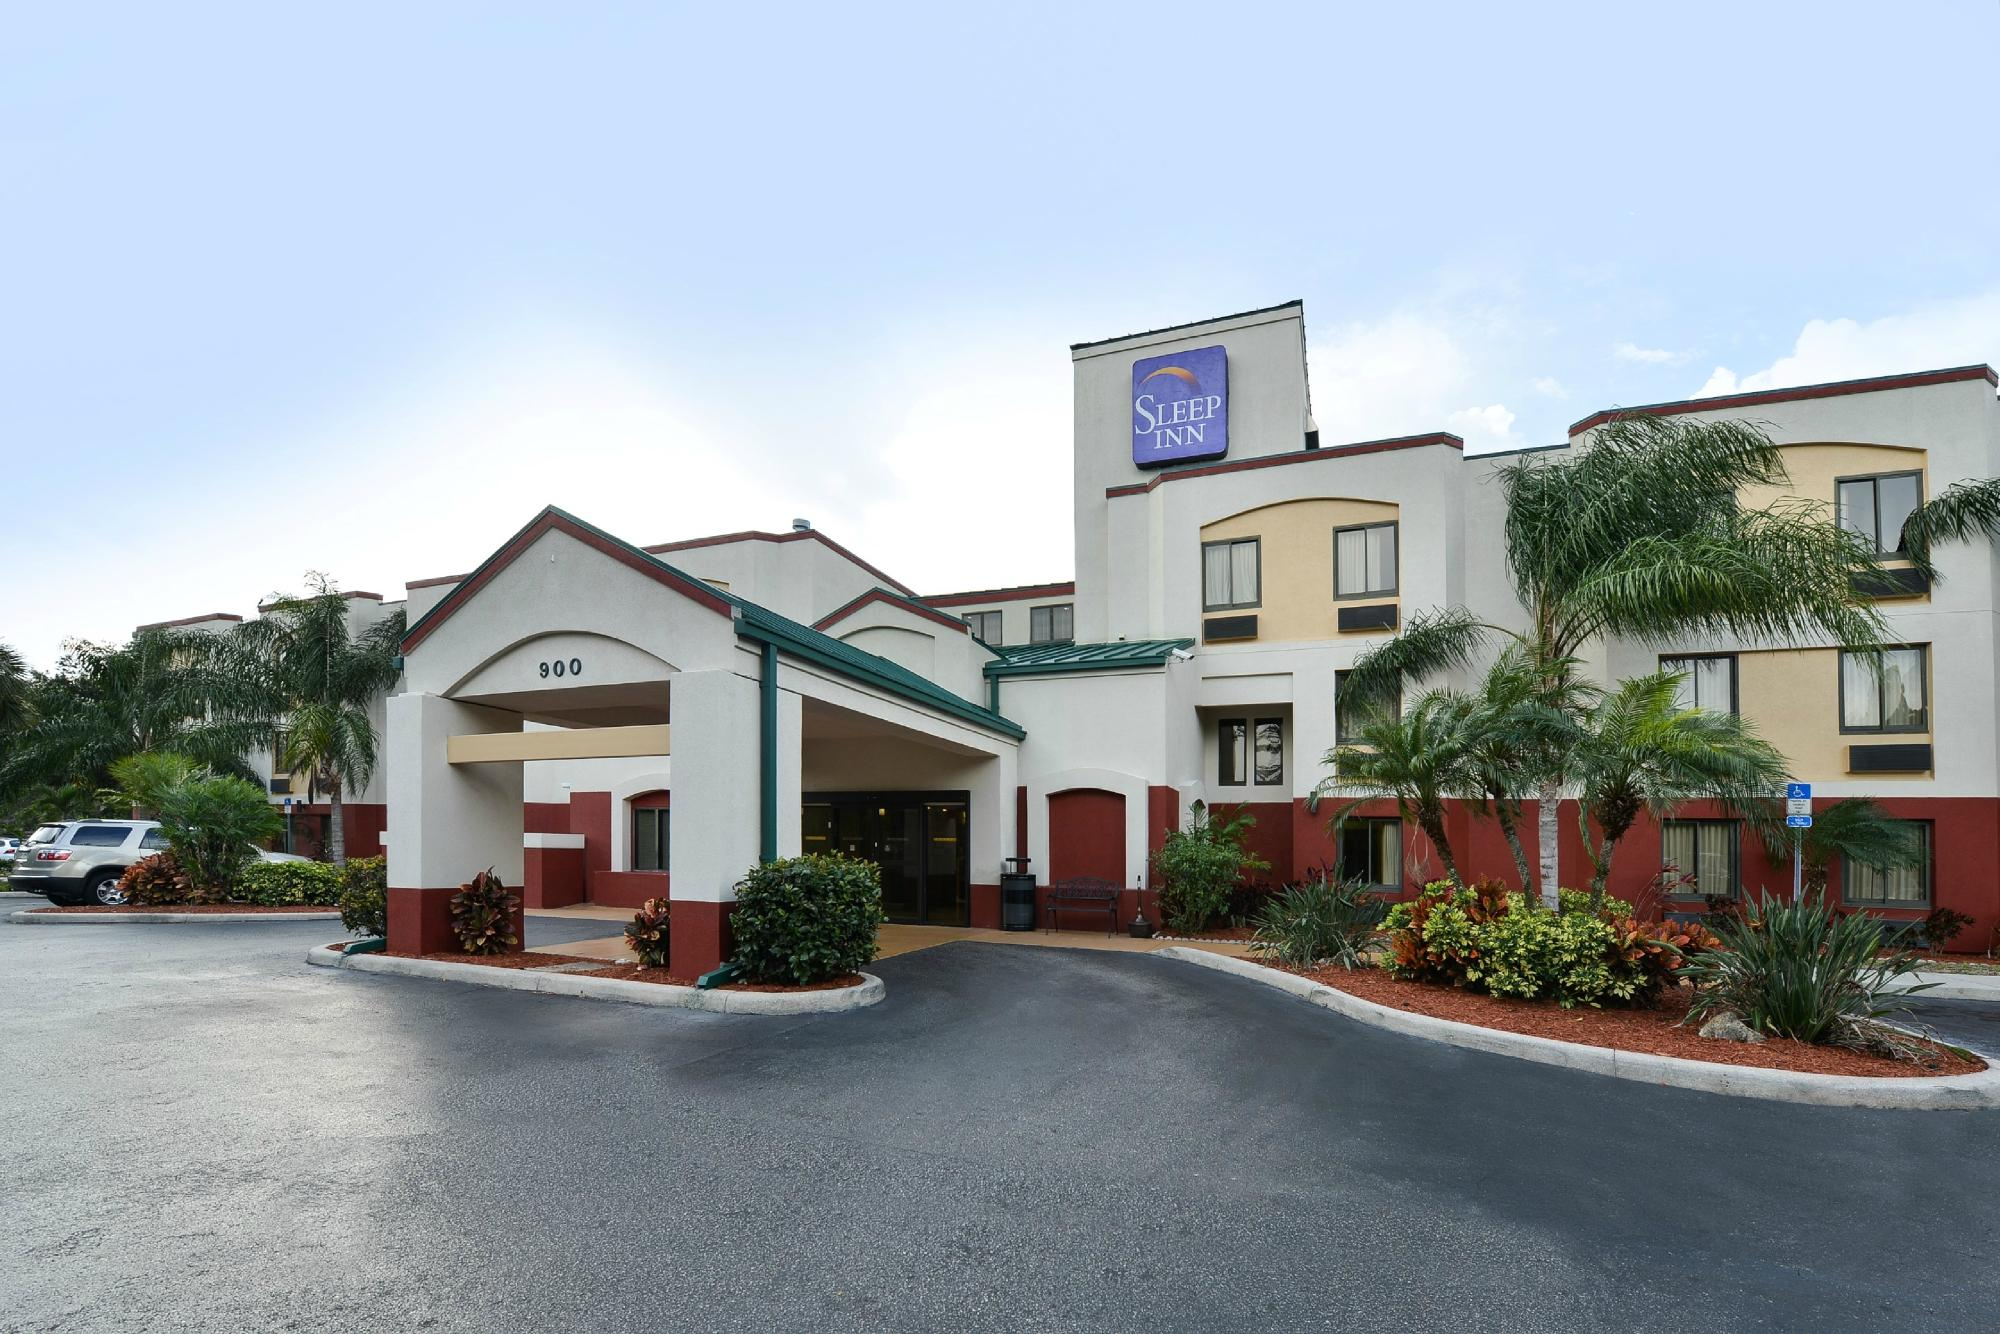 Sleep Inn Sarasota